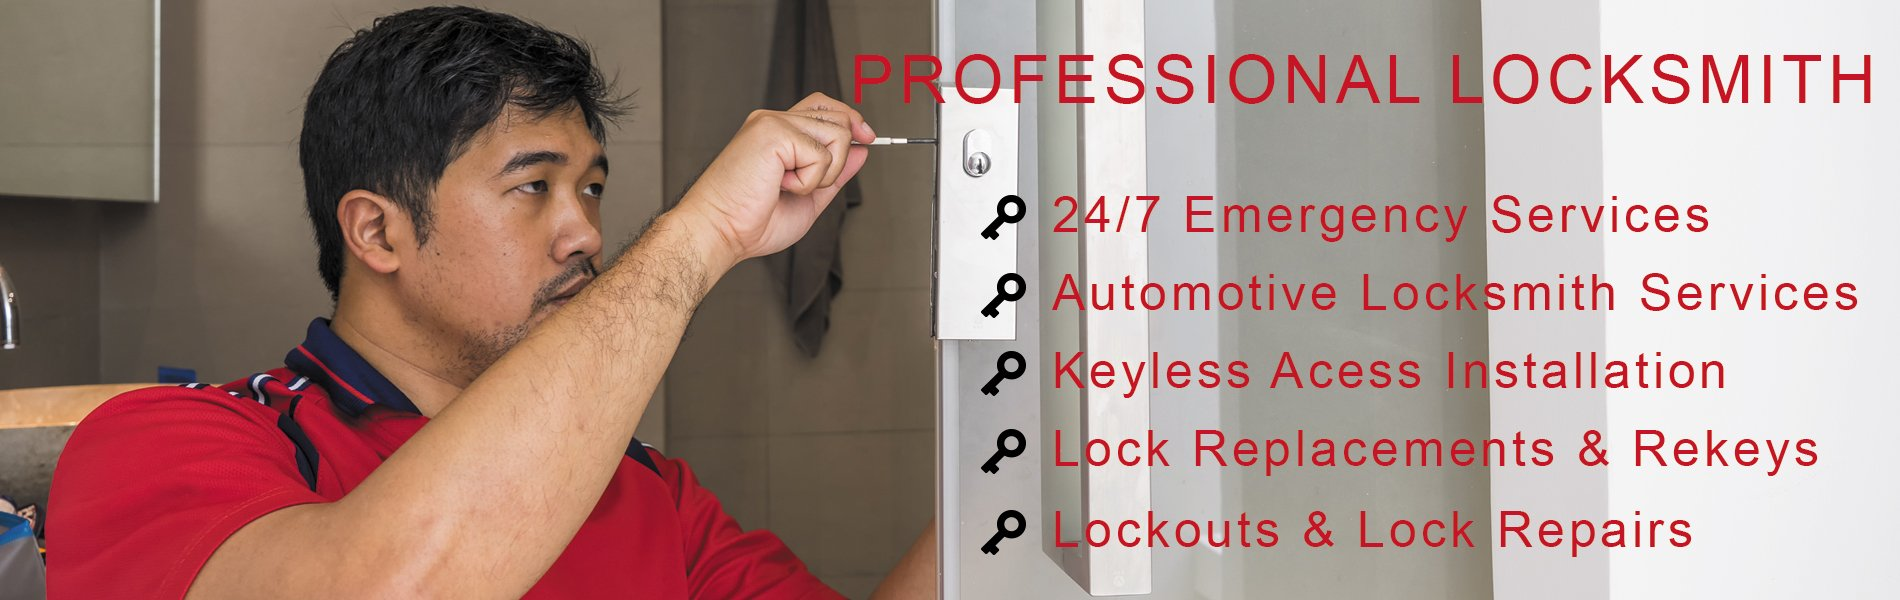 Miami Local Locksmith Miami, FL 305-704-9903